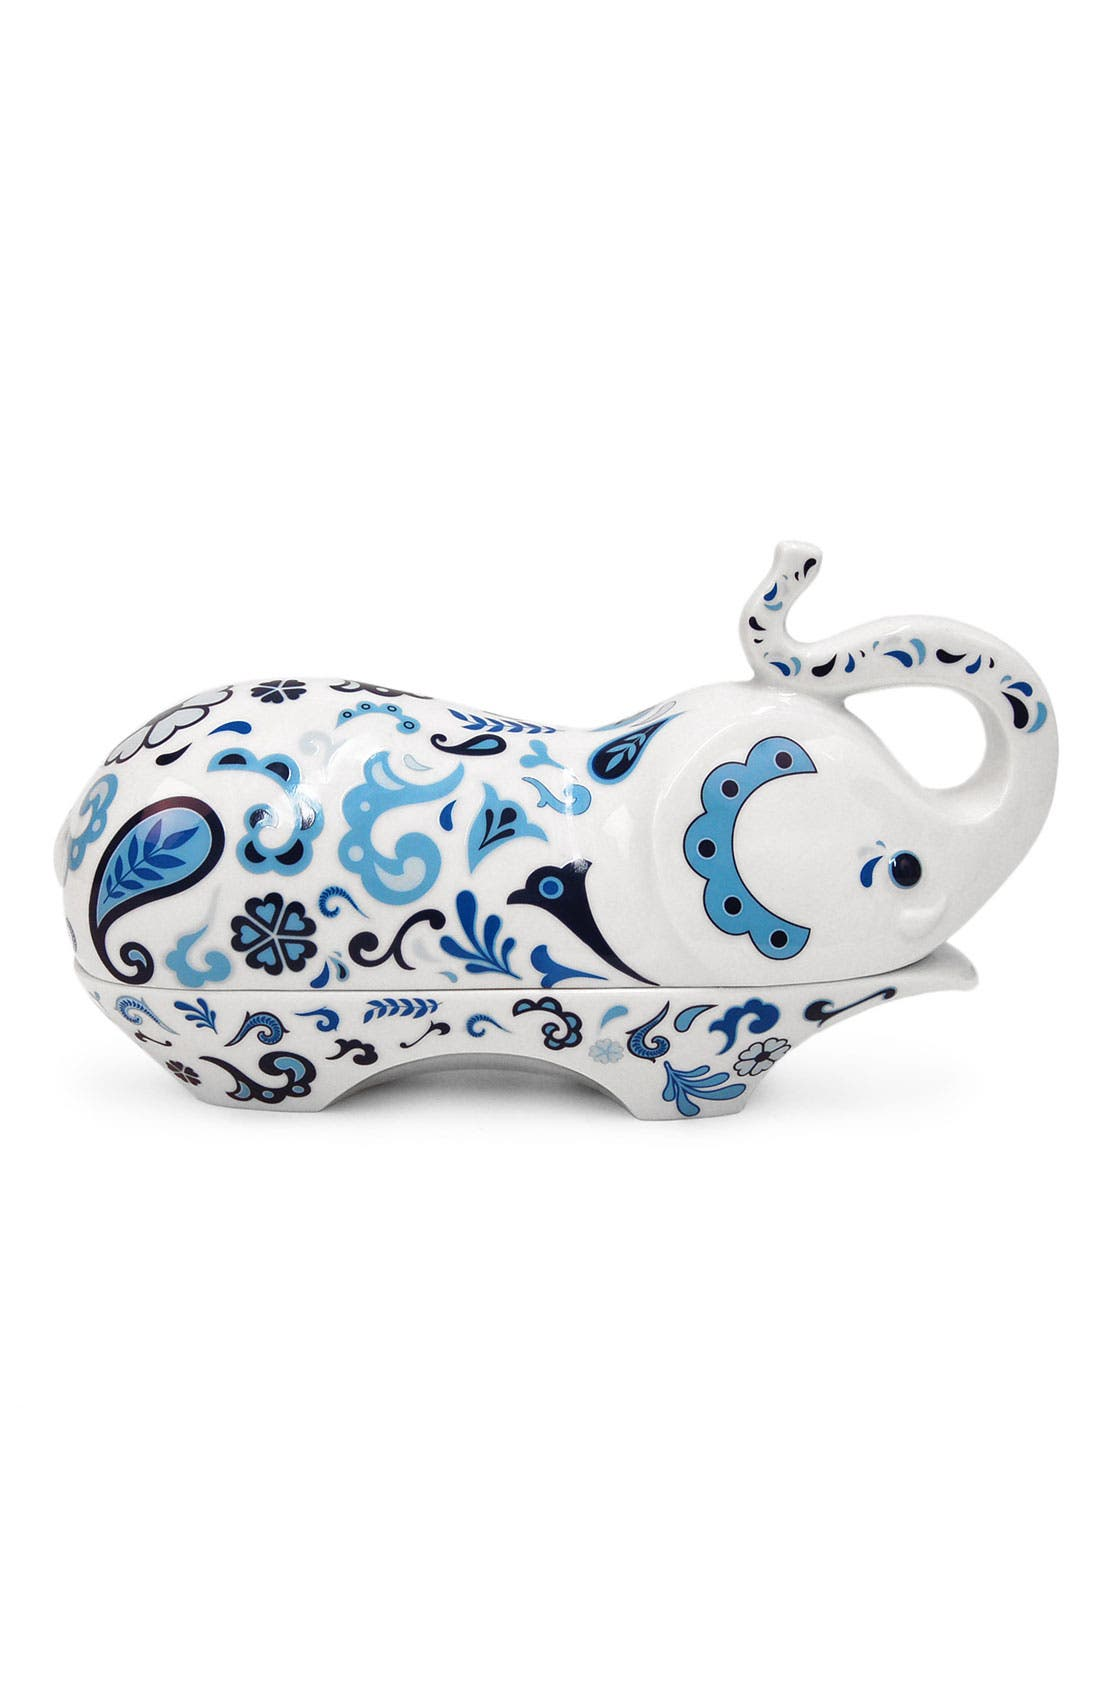 Alternate Image 1 Selected - Jonathan Adler 'Elephant' Porcelain Butter Dish